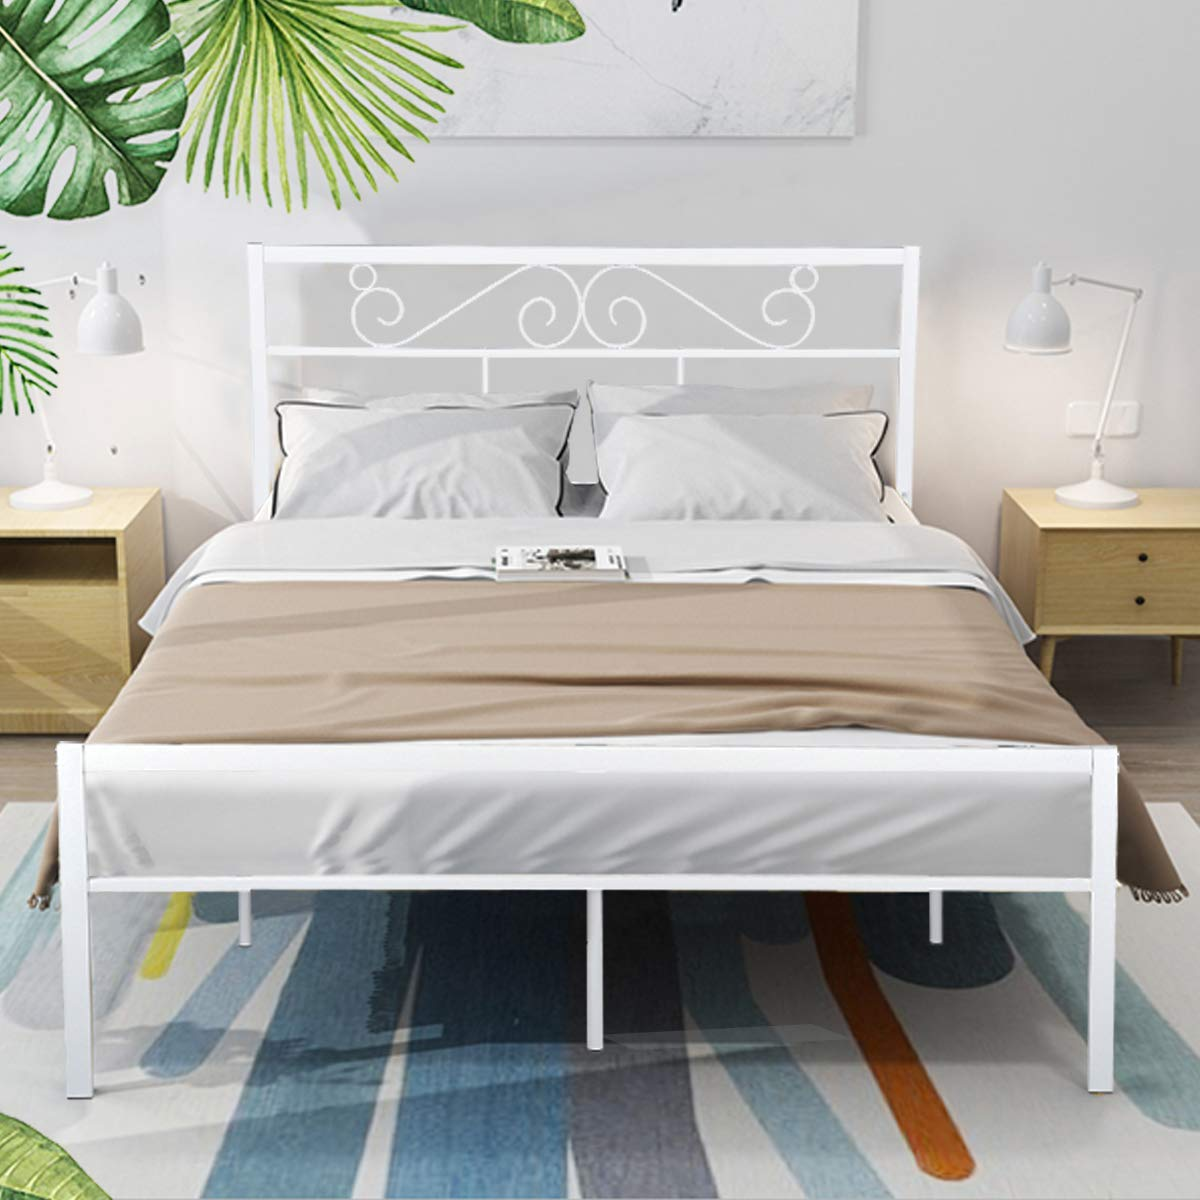 GreenForest Queen Bed Frame with Wooden Slats Support Metal Platform with Headboard No Box Spring Needed, White (82.87'' x 62.99'' x 35.63'' (LxWxH) by GreenForest